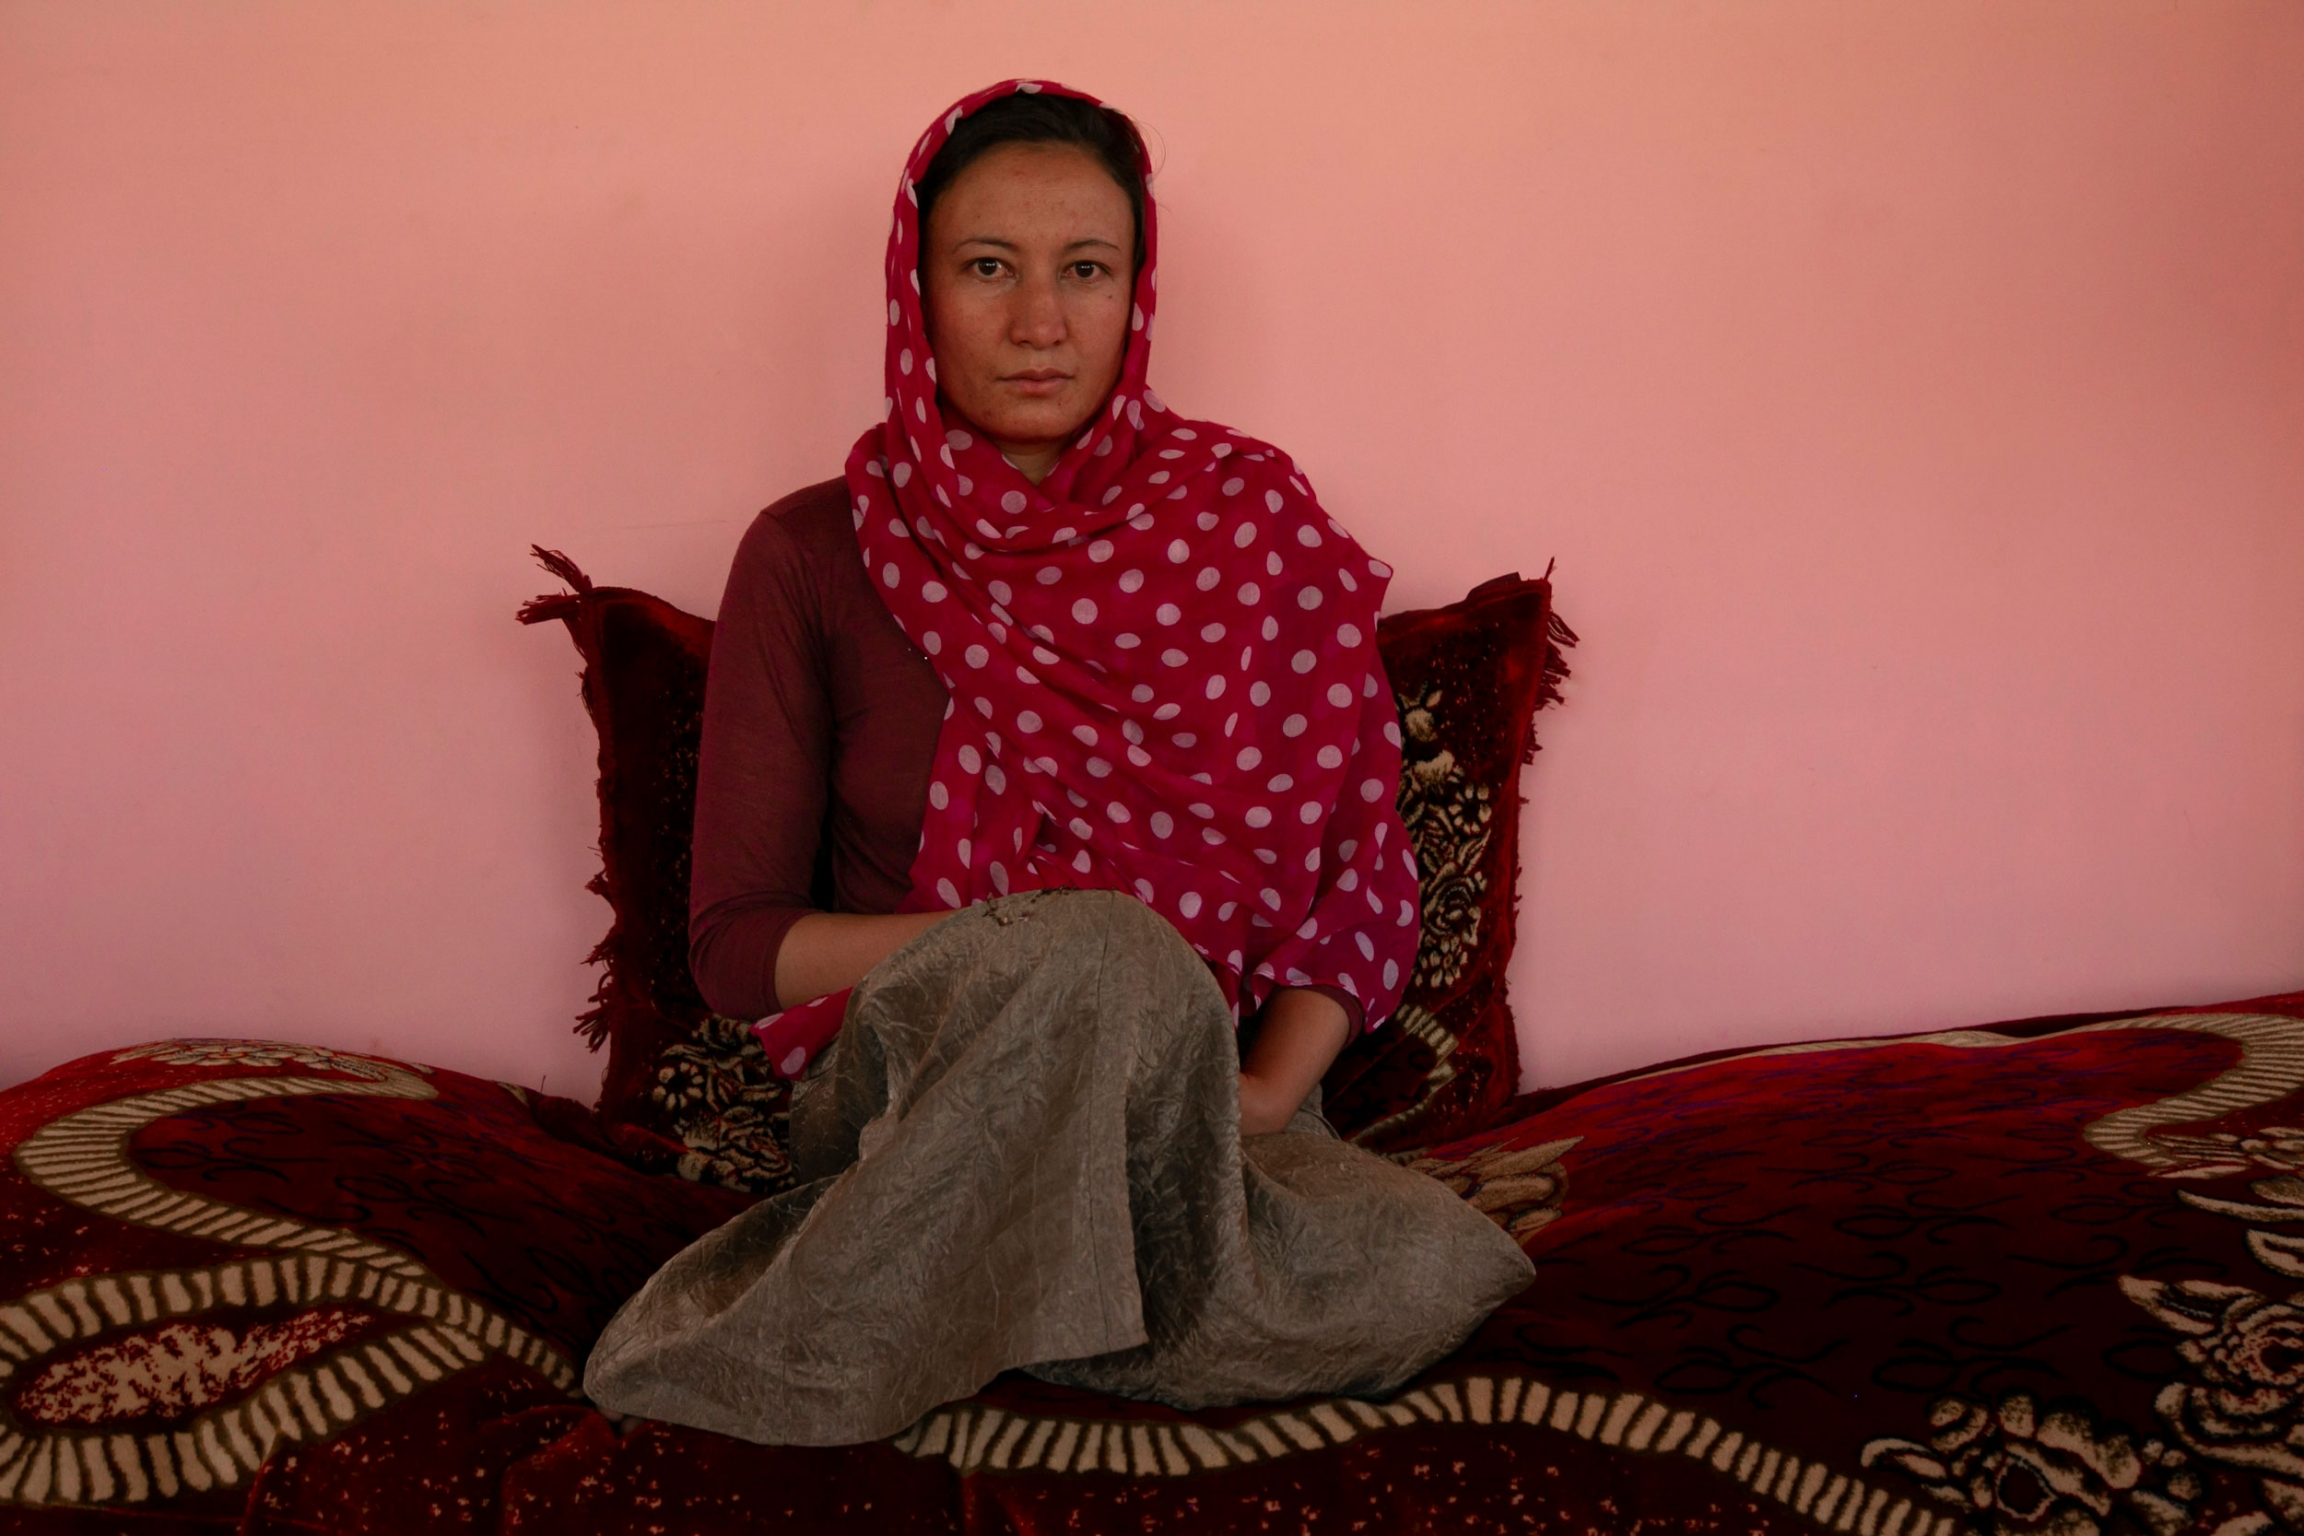 A woman is shown sitting on a large cushion and wearing a red and white polka dot scarf.